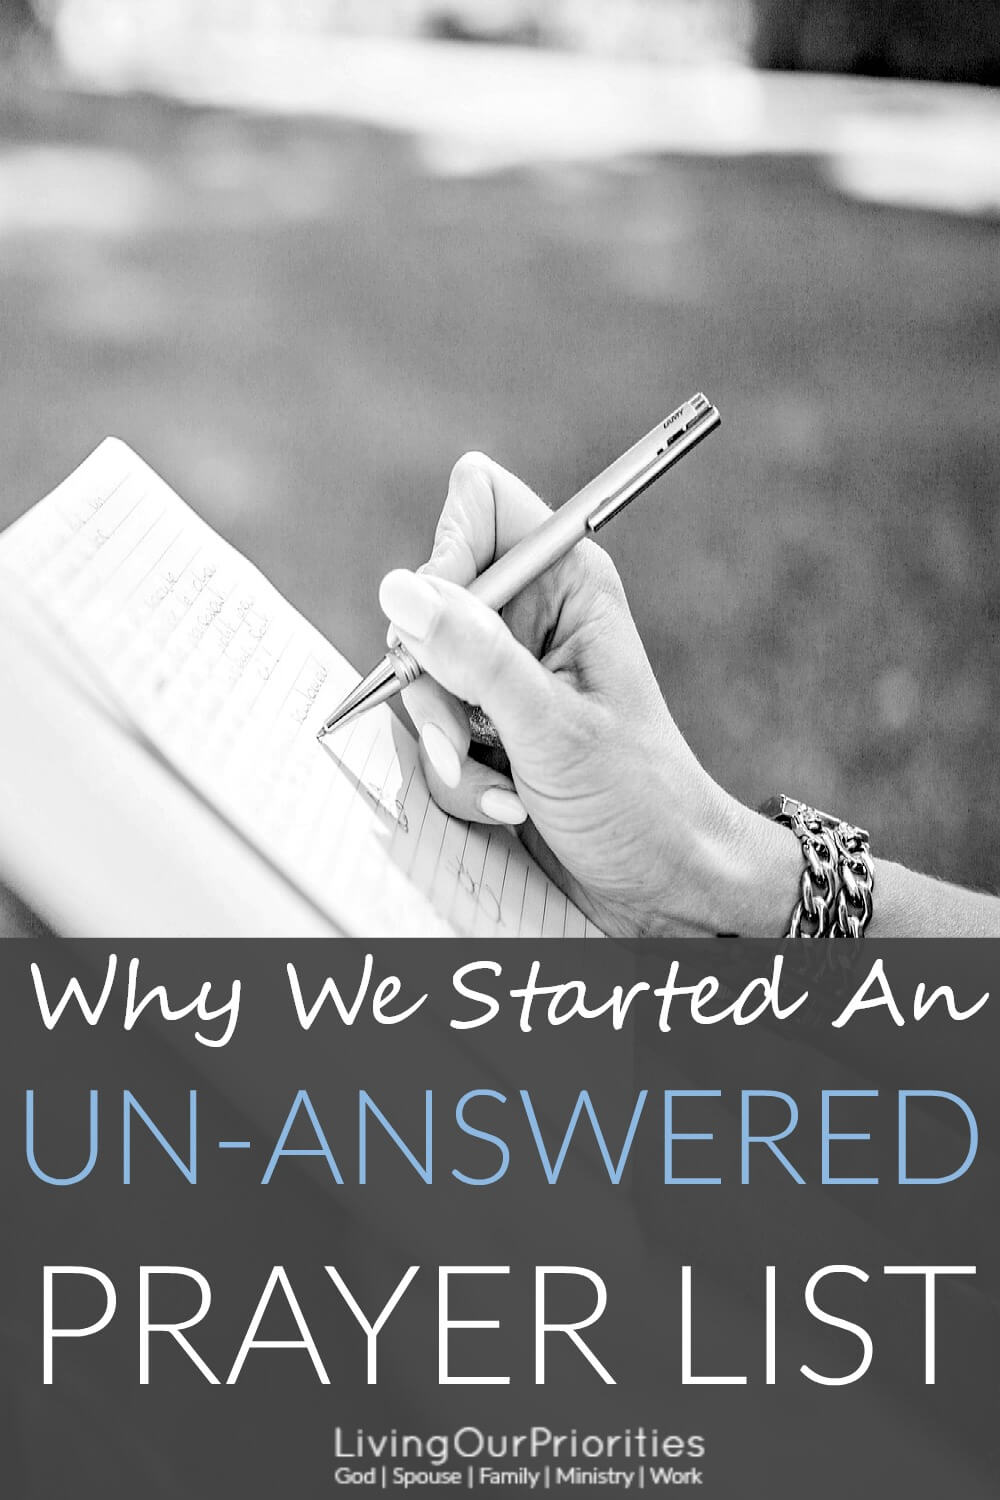 Why is it that we only journal about the prayers God answers? Aren't unanswered prayers, still answered prayers? This question caused us to start an un-answered prayer list. Read more to find out why.